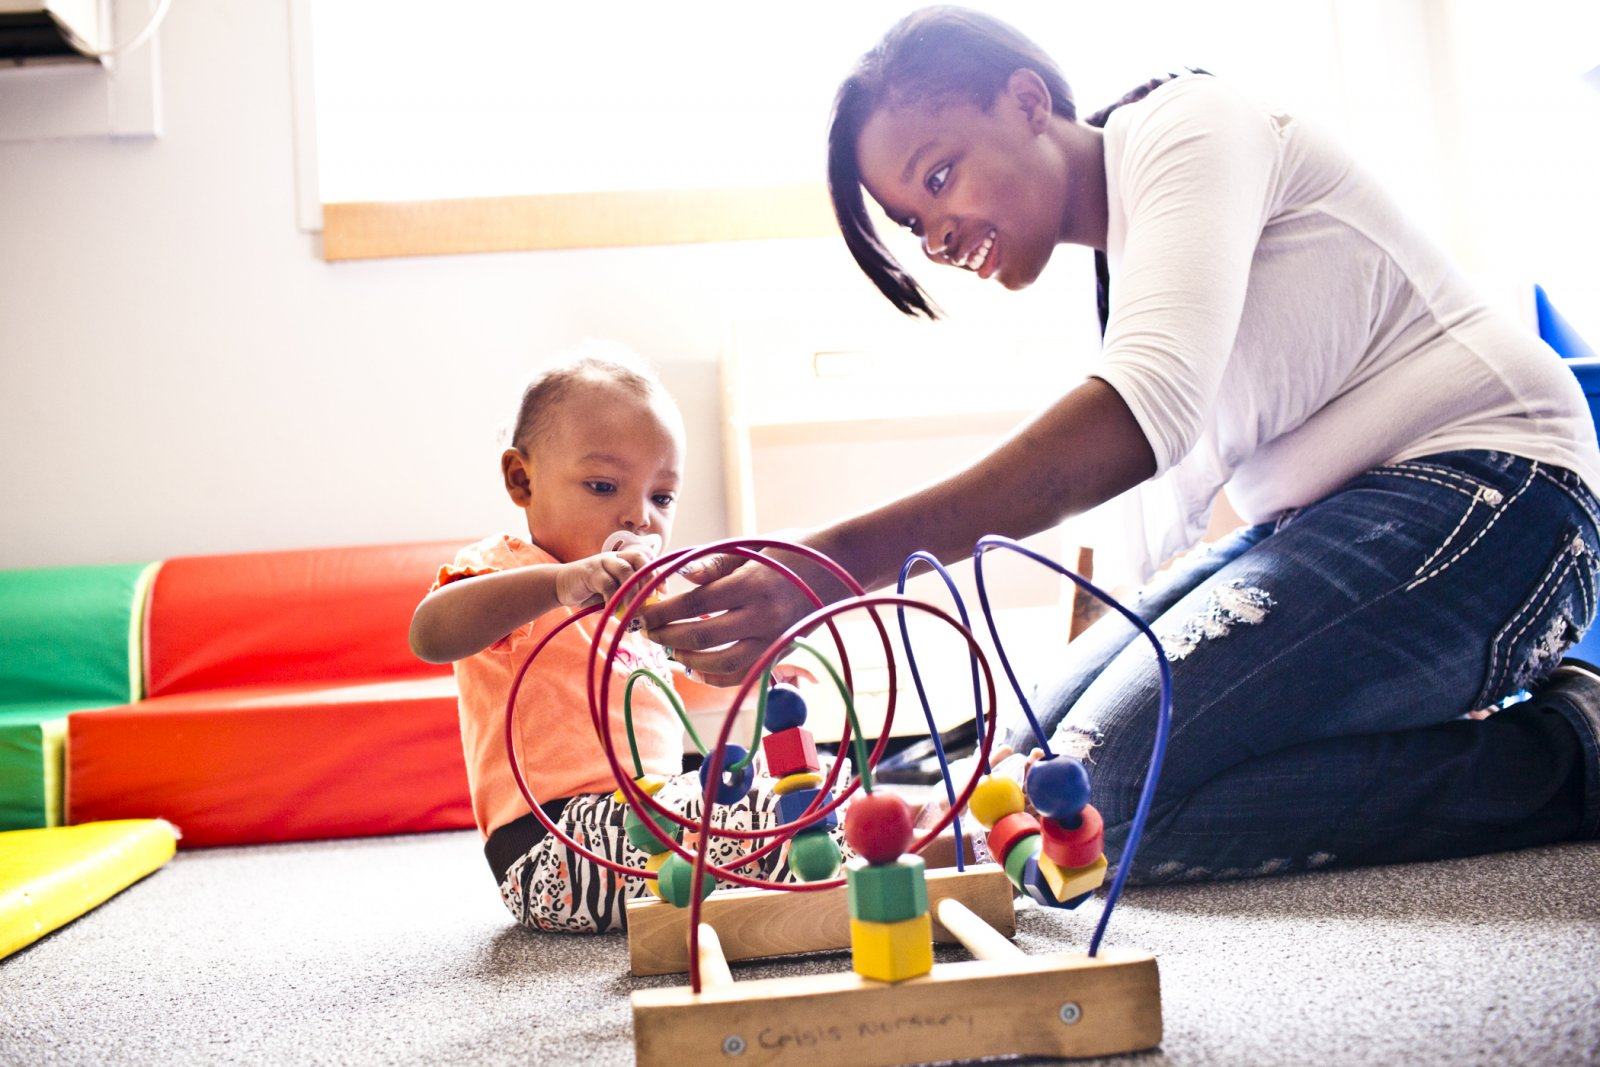 Excellent by Design - Meadow Park Children's Center is designed for infants to school aged children through 5th grade. We have been awarded a 5 star rating through Step Up to Quality because of our commitment to quality and excellent early care and education program.Learn More